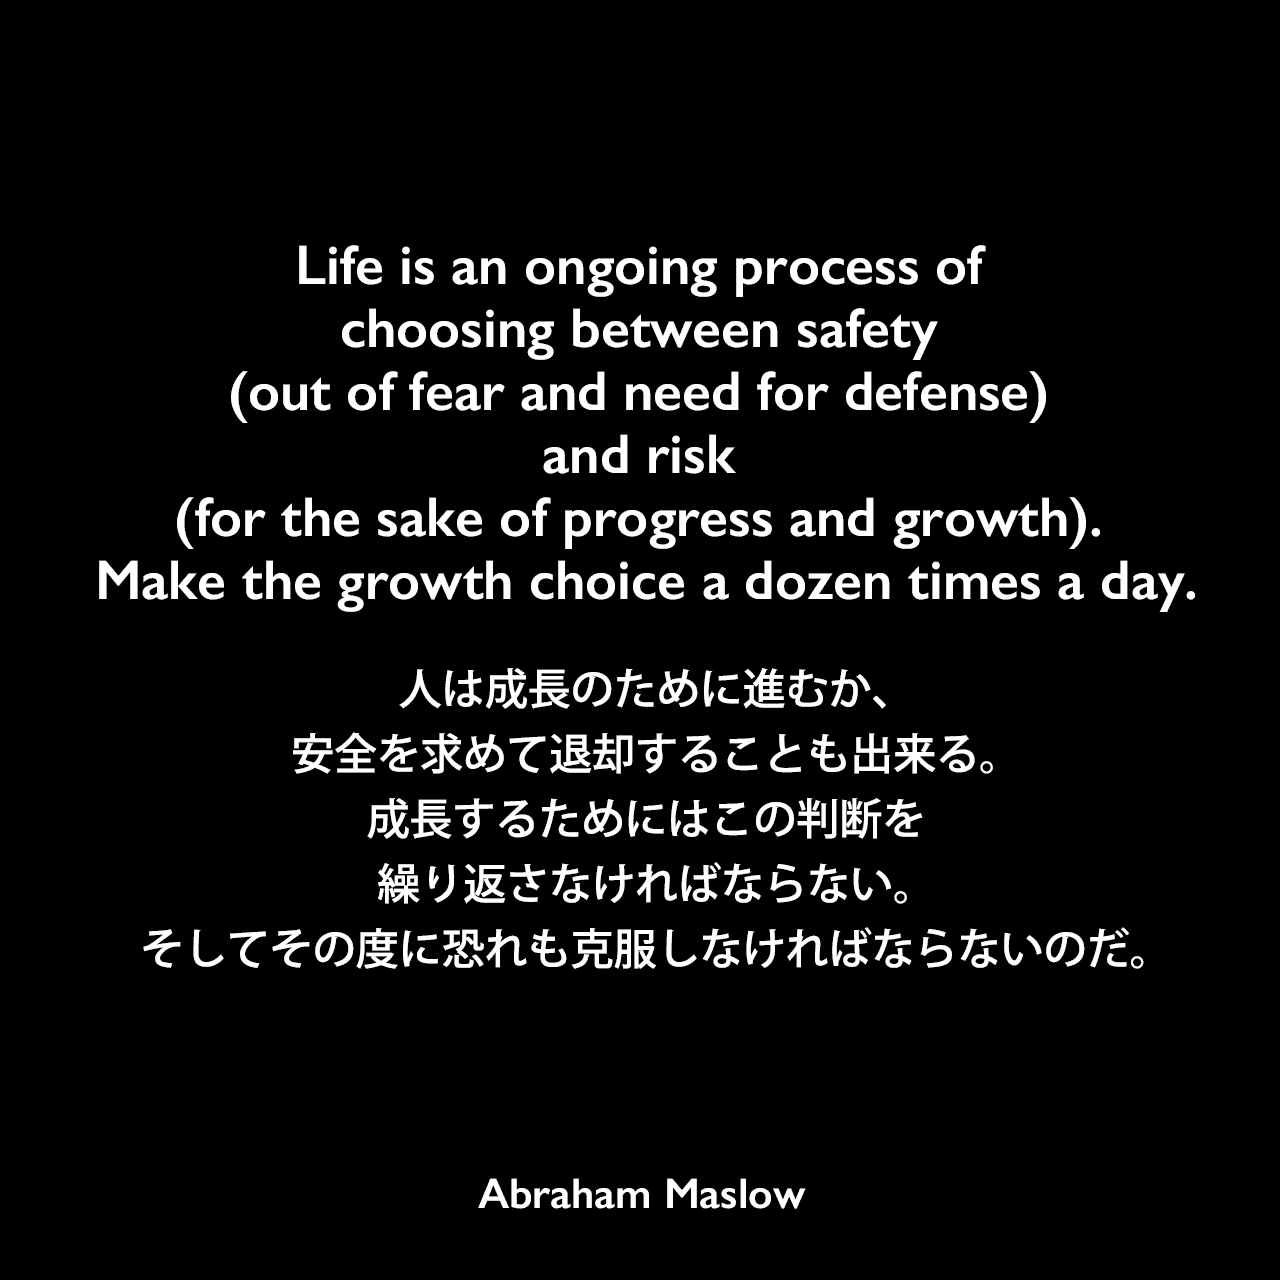 Life is an ongoing process of choosing between safety (out of fear and need for defense) and risk (for the sake of progress and growth). Make the growth choice a dozen times a day.人は成長のために進むか、安全を求めて退却することも出来る。成長するためにはこの判断を繰り返さなければならない。そしてその度に恐れも克服しなければならないのだ。Abraham Maslow